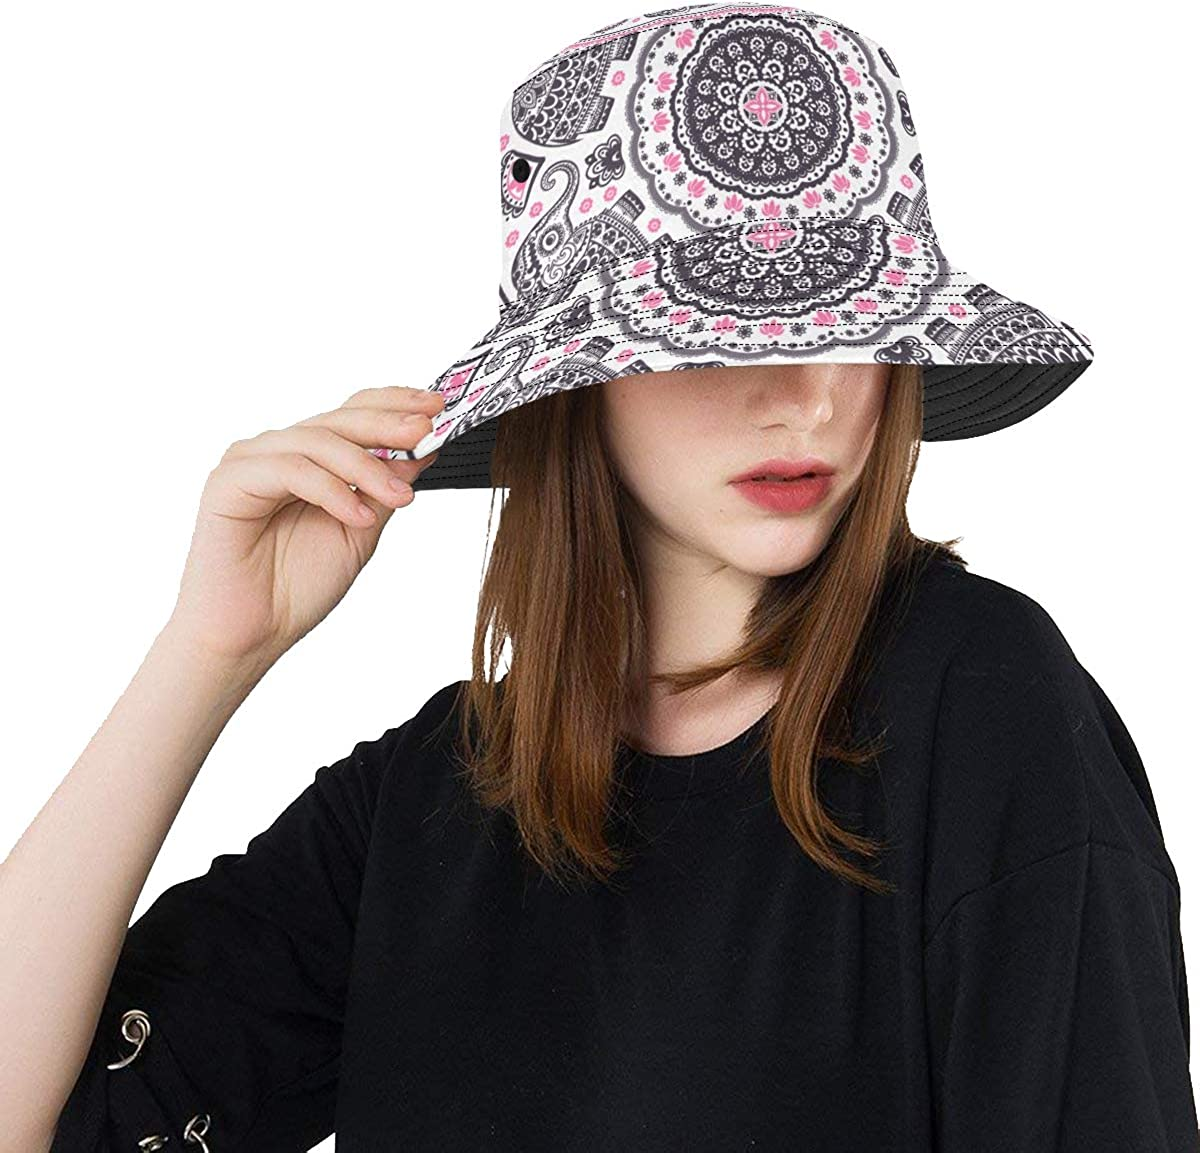 Indian Tribal Hand Drawn Symbol New Summer Unisex Cotton Fashion Fishing Sun Bucket Hats for Kid Teens Women and Men with Customize Top Packable Fisherman Cap for Outdoor Travel